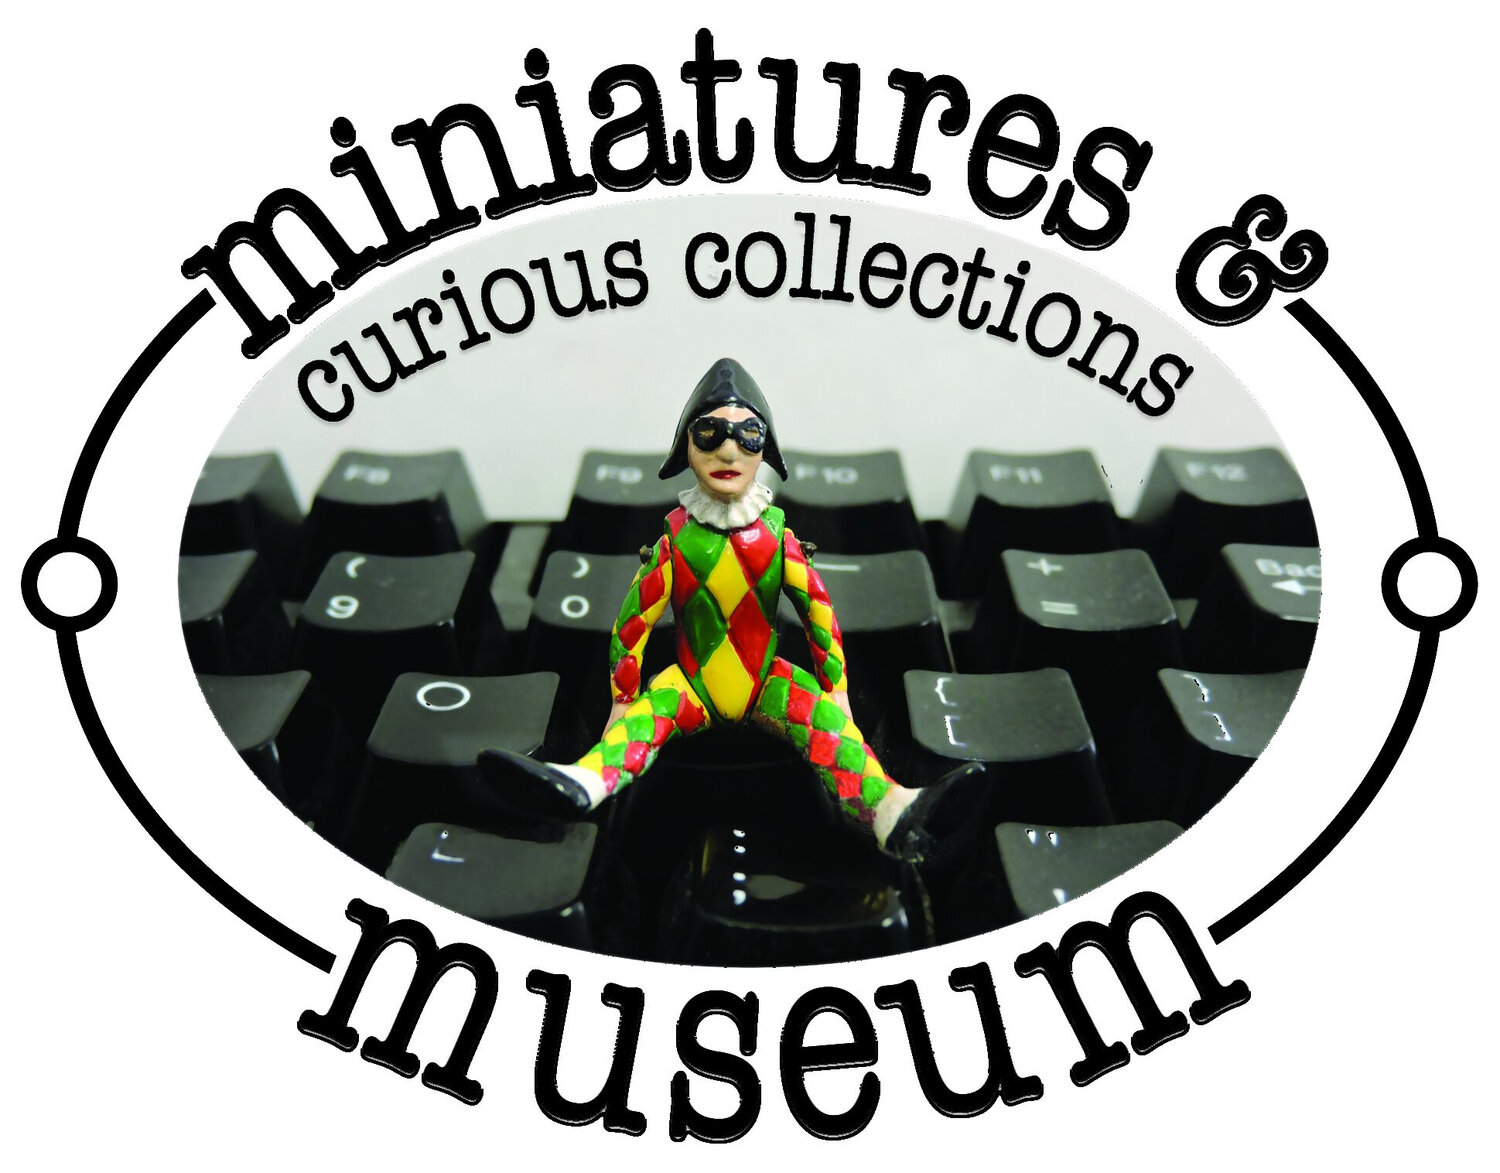 The Miniatures and Curious Collections Museum